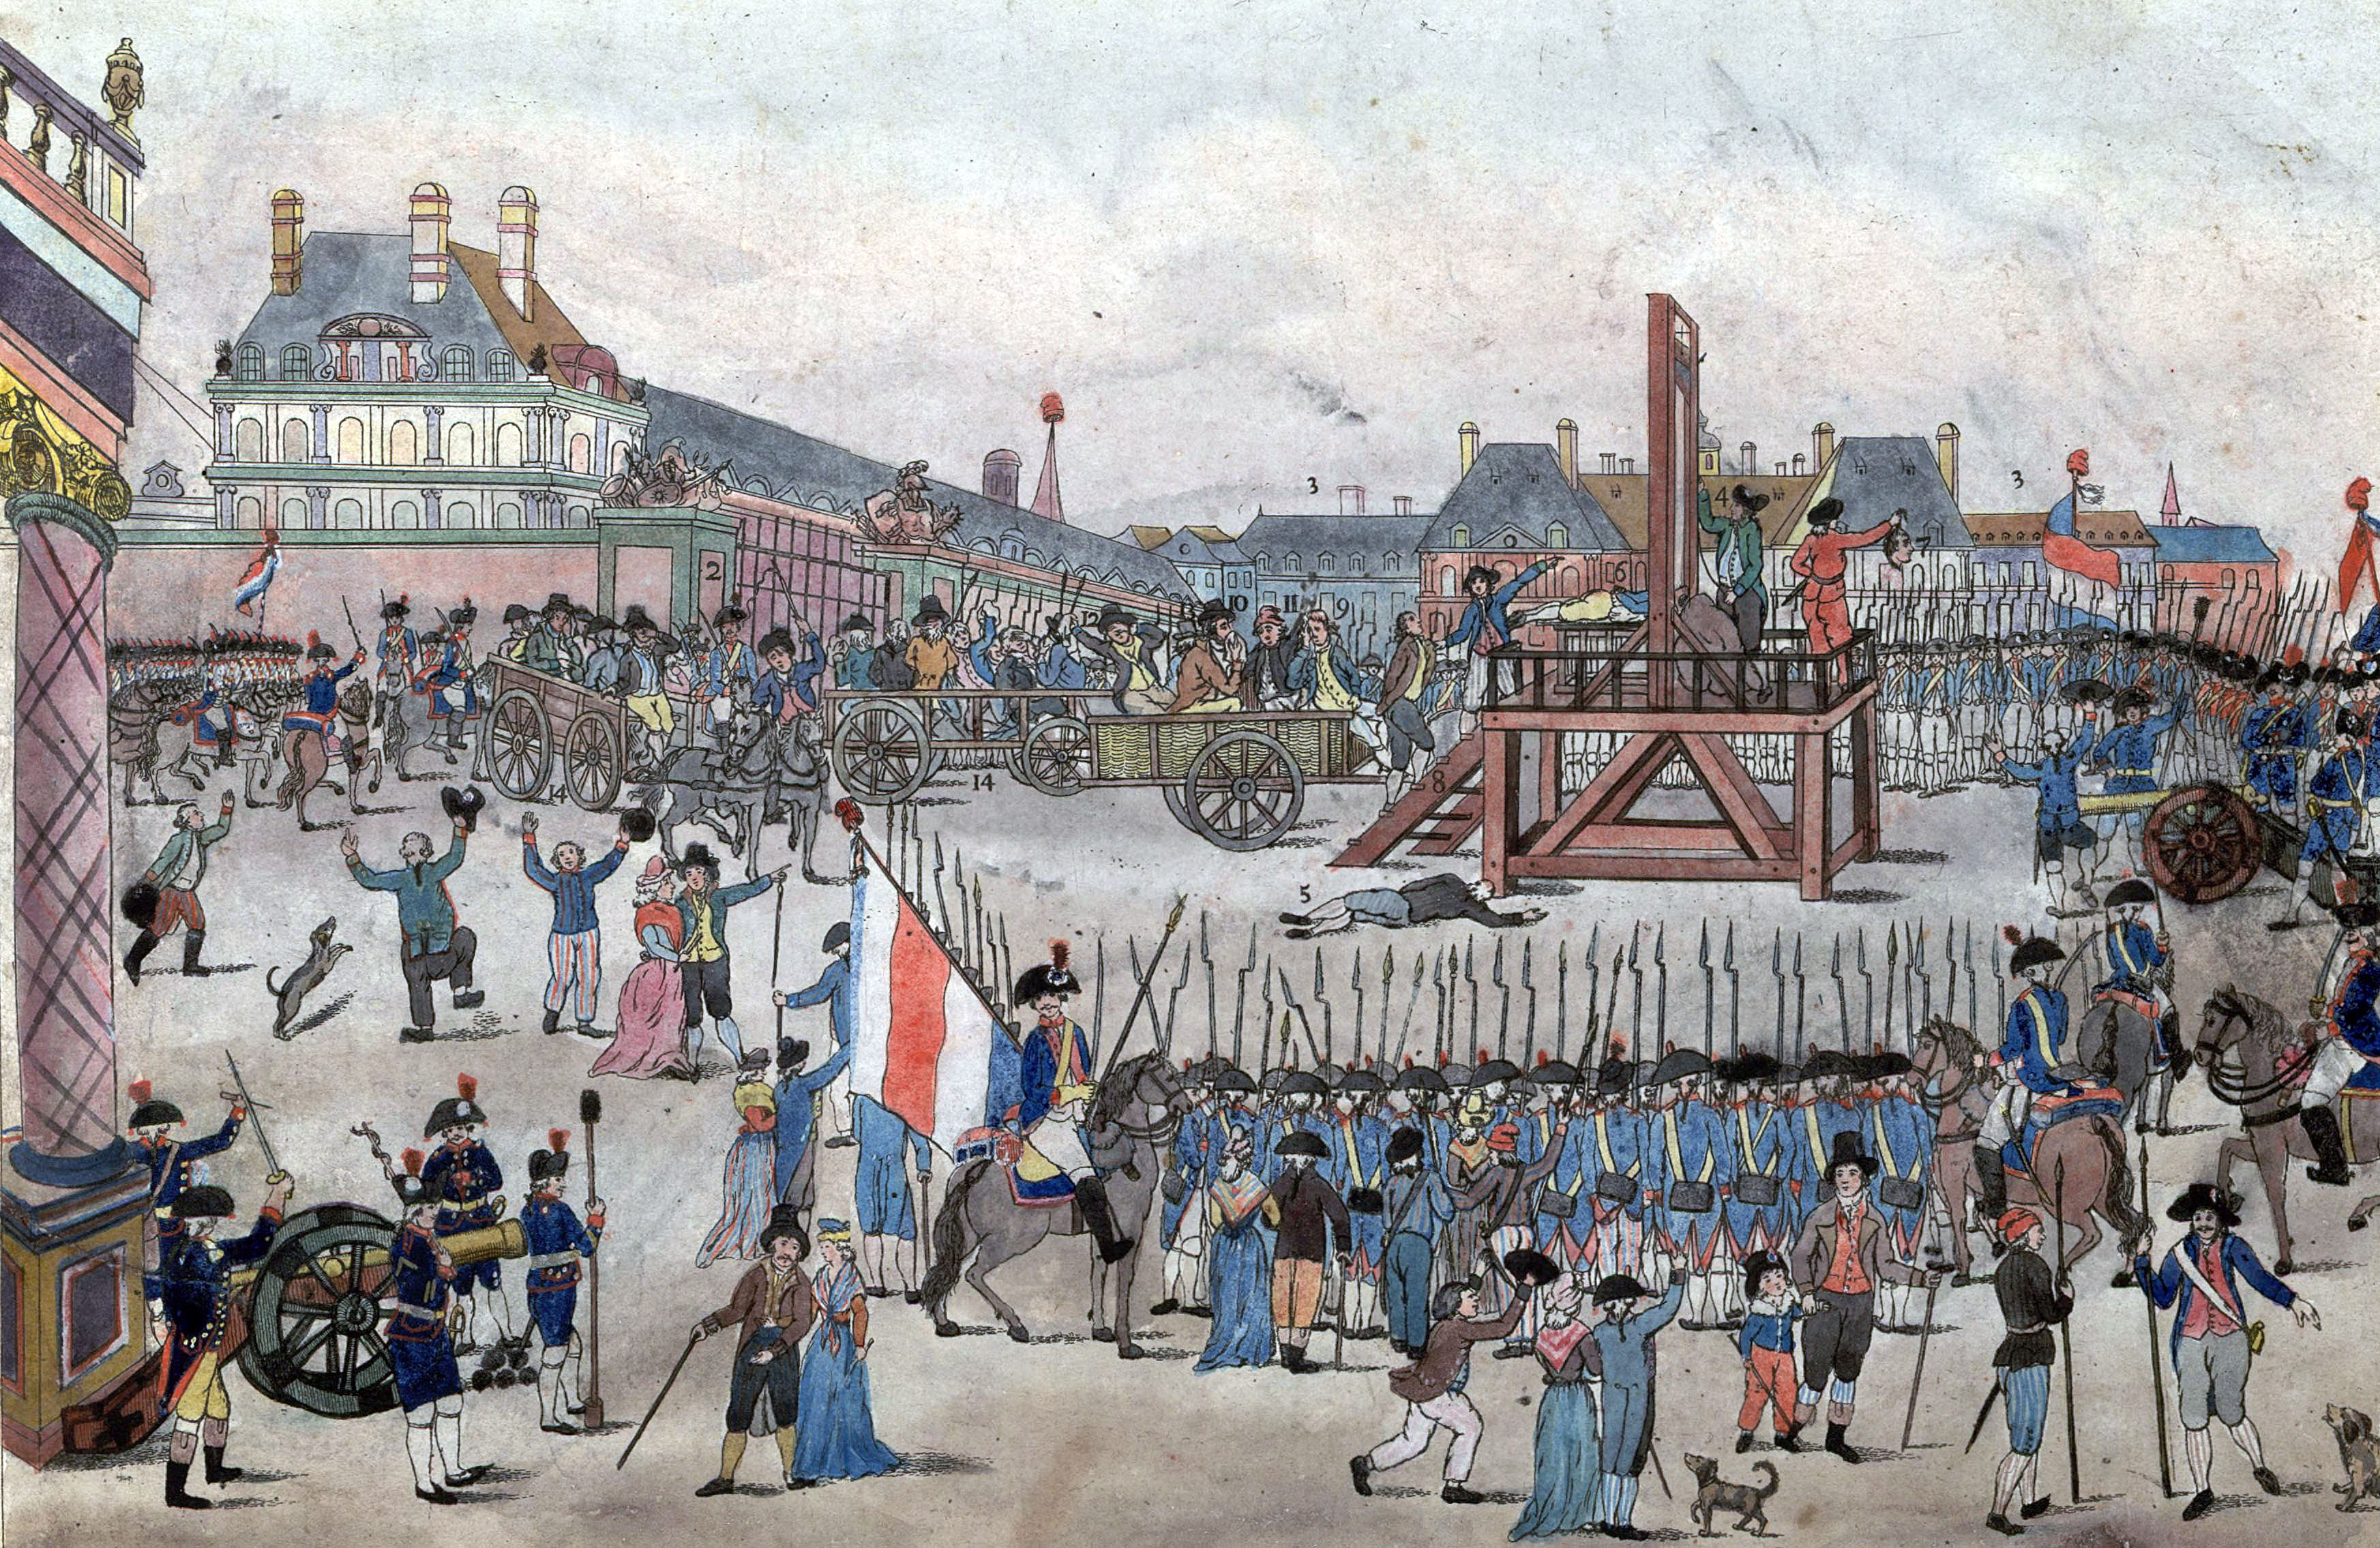 The execution of Maximilian Robespierre in 1794